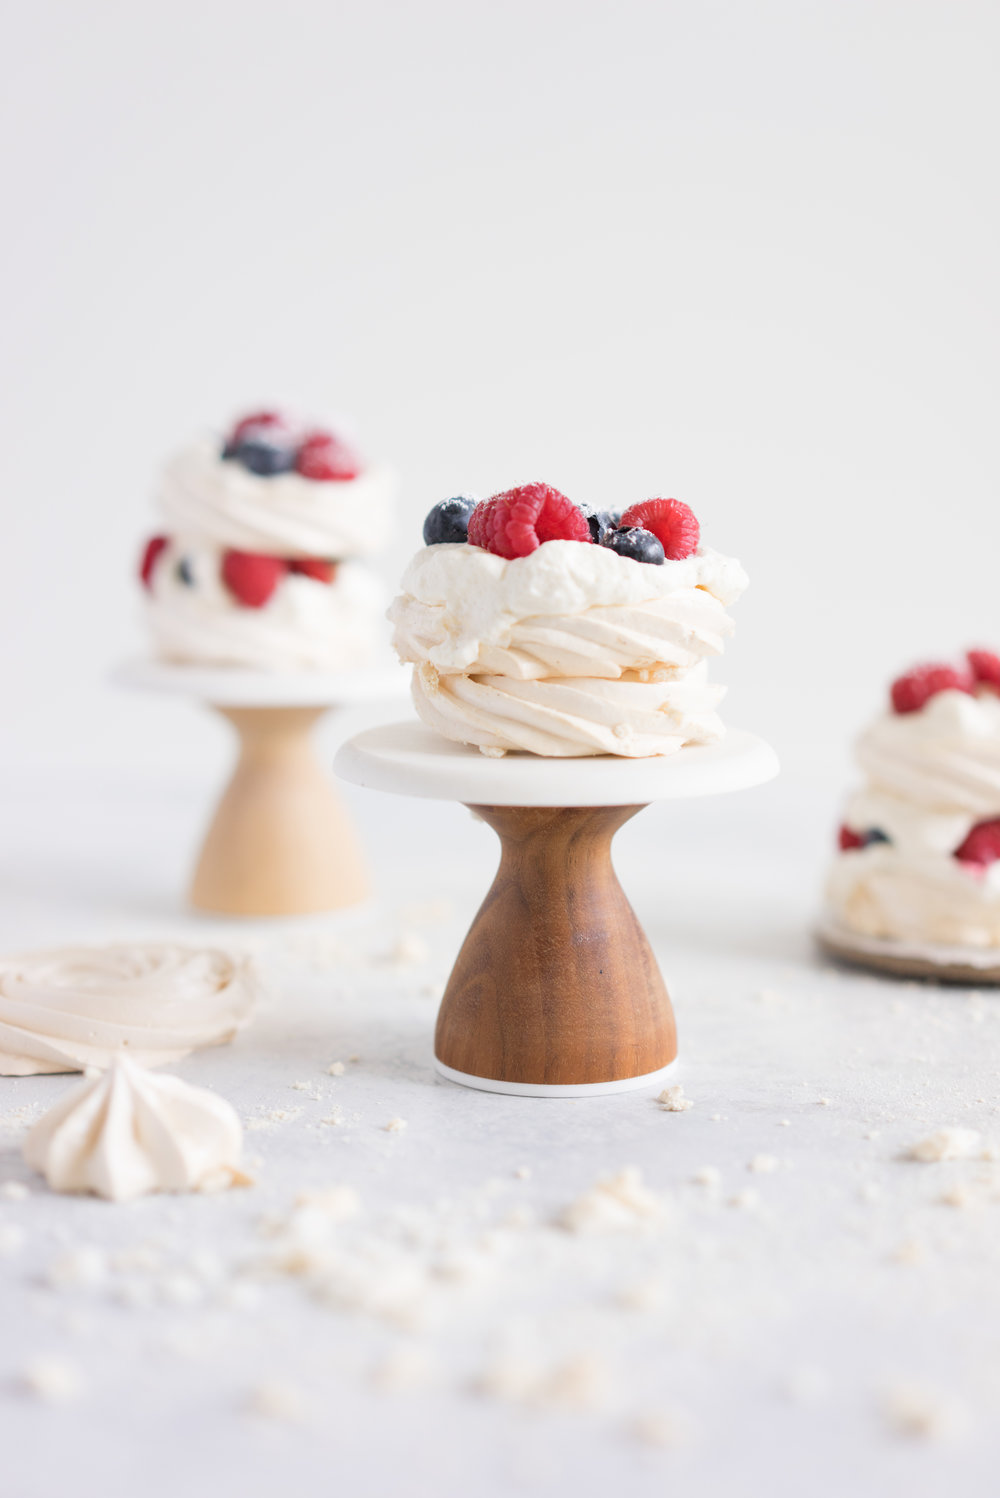 Meringue stacks with vanilla bean mascarpone whipped cream and fresh berries. The perfect, simple, throw together dessert that can be easily made ahead and is easy to feed a crowd